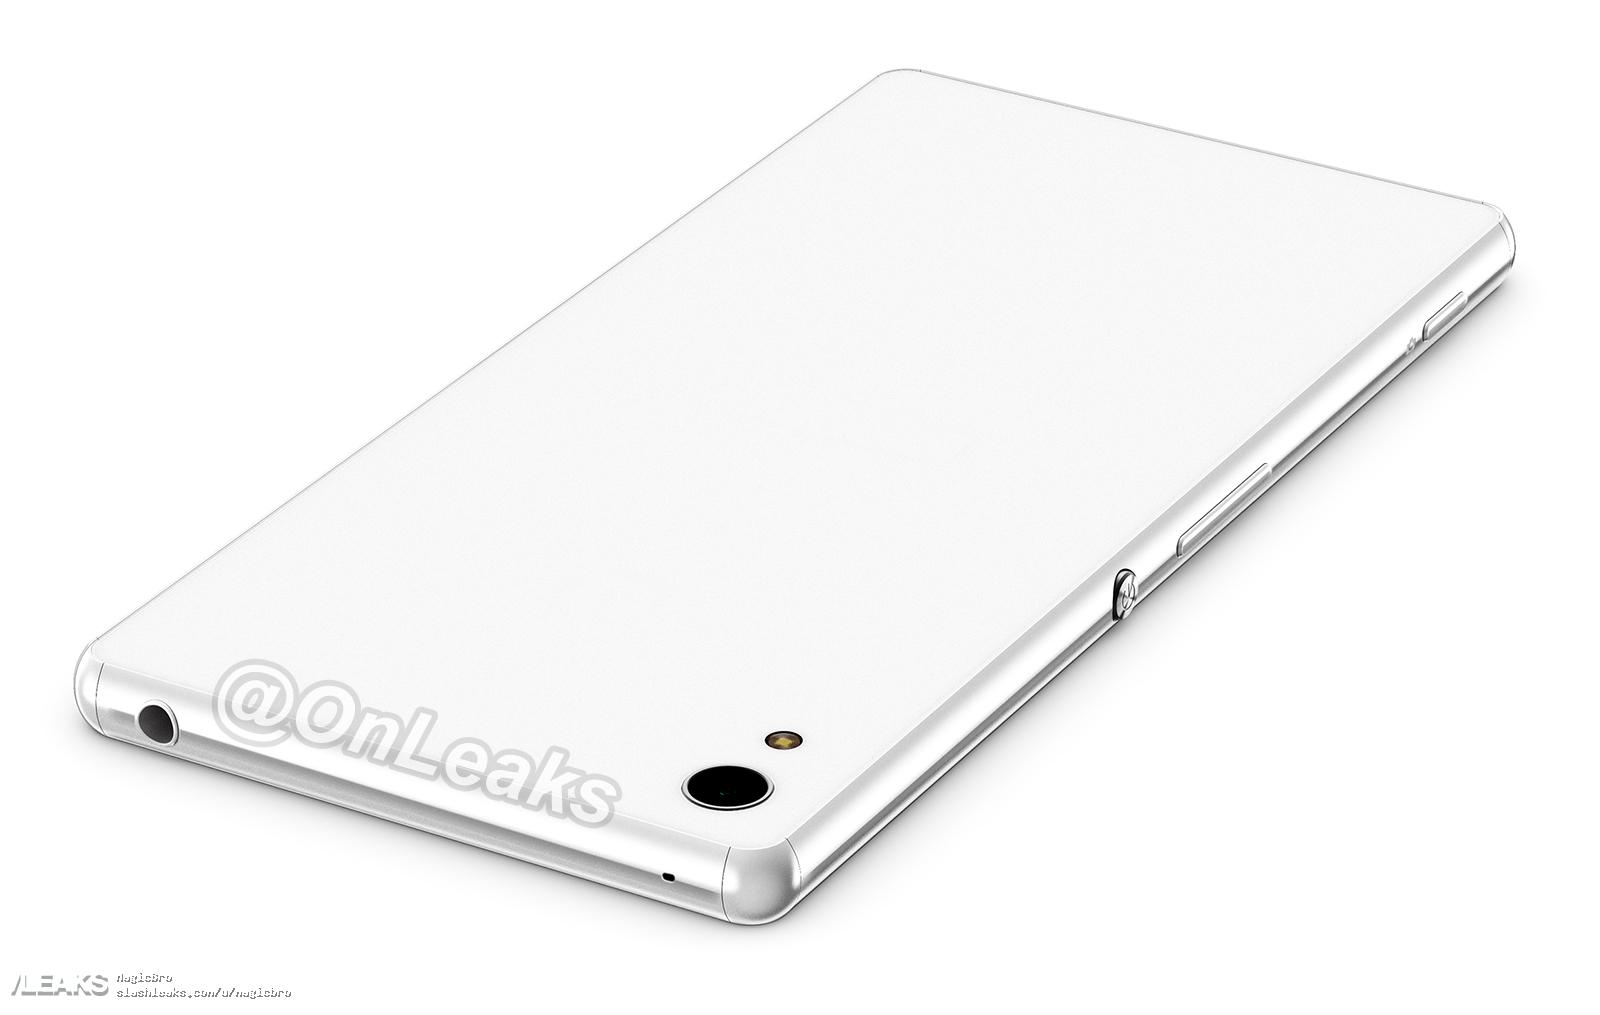 More official looking renders shows off the Xperia Z4 from